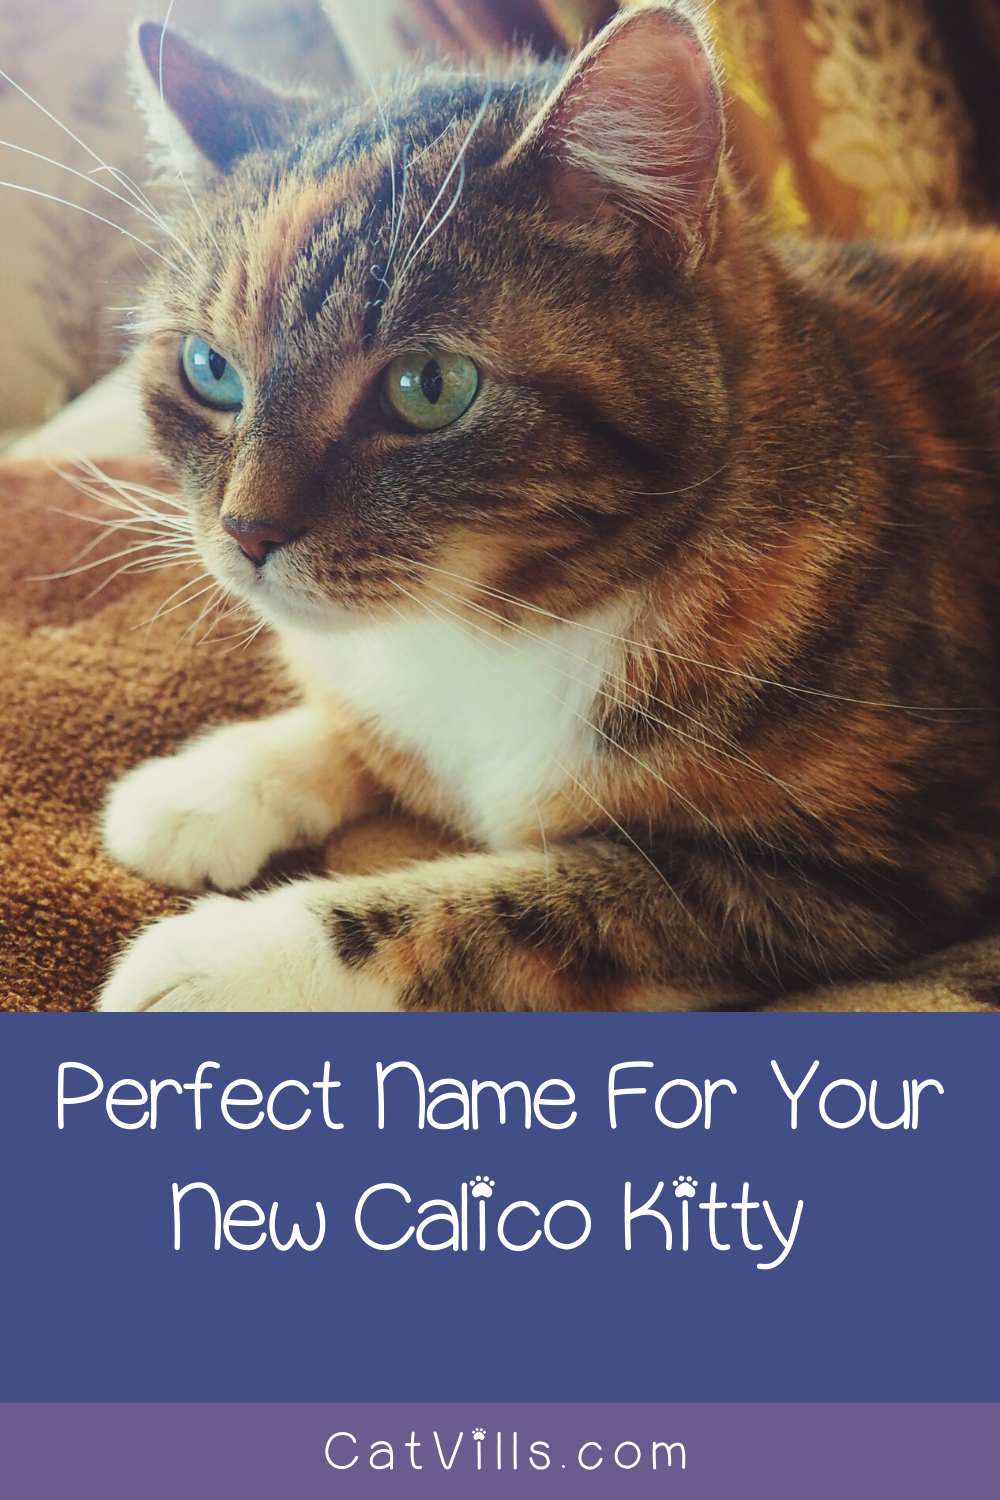 60 Clever Calico Cat Names You'll Adore CatVills in 2020